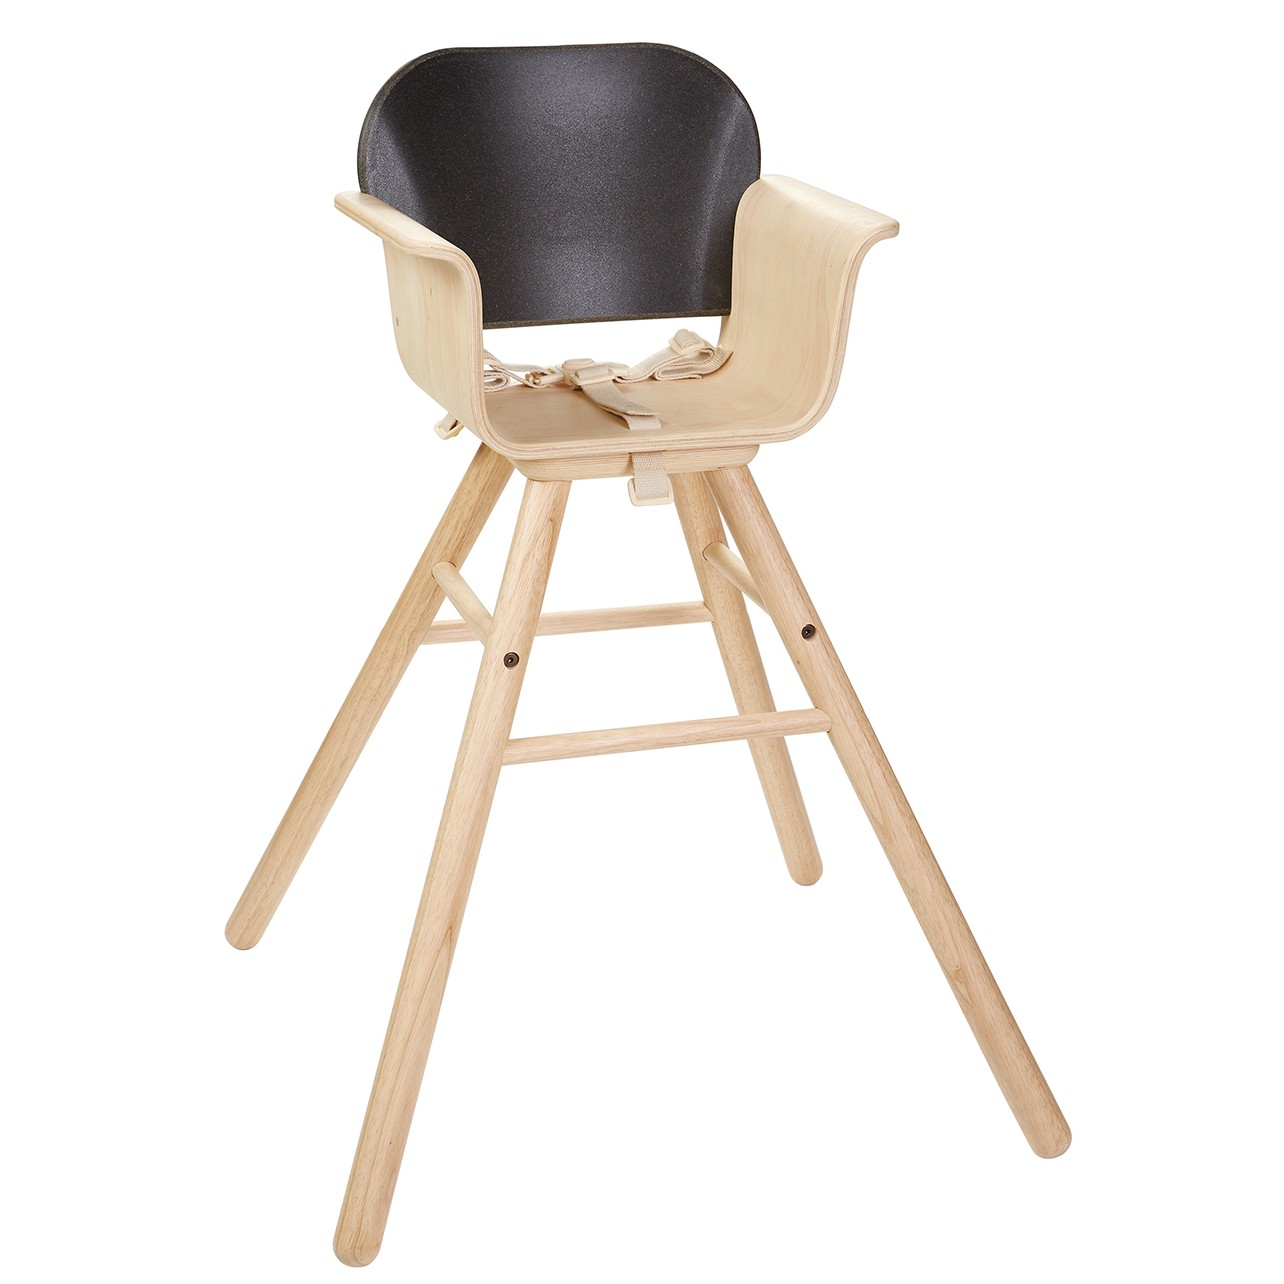 wooden high chair uk how to buy a lift plan toys black tap expand